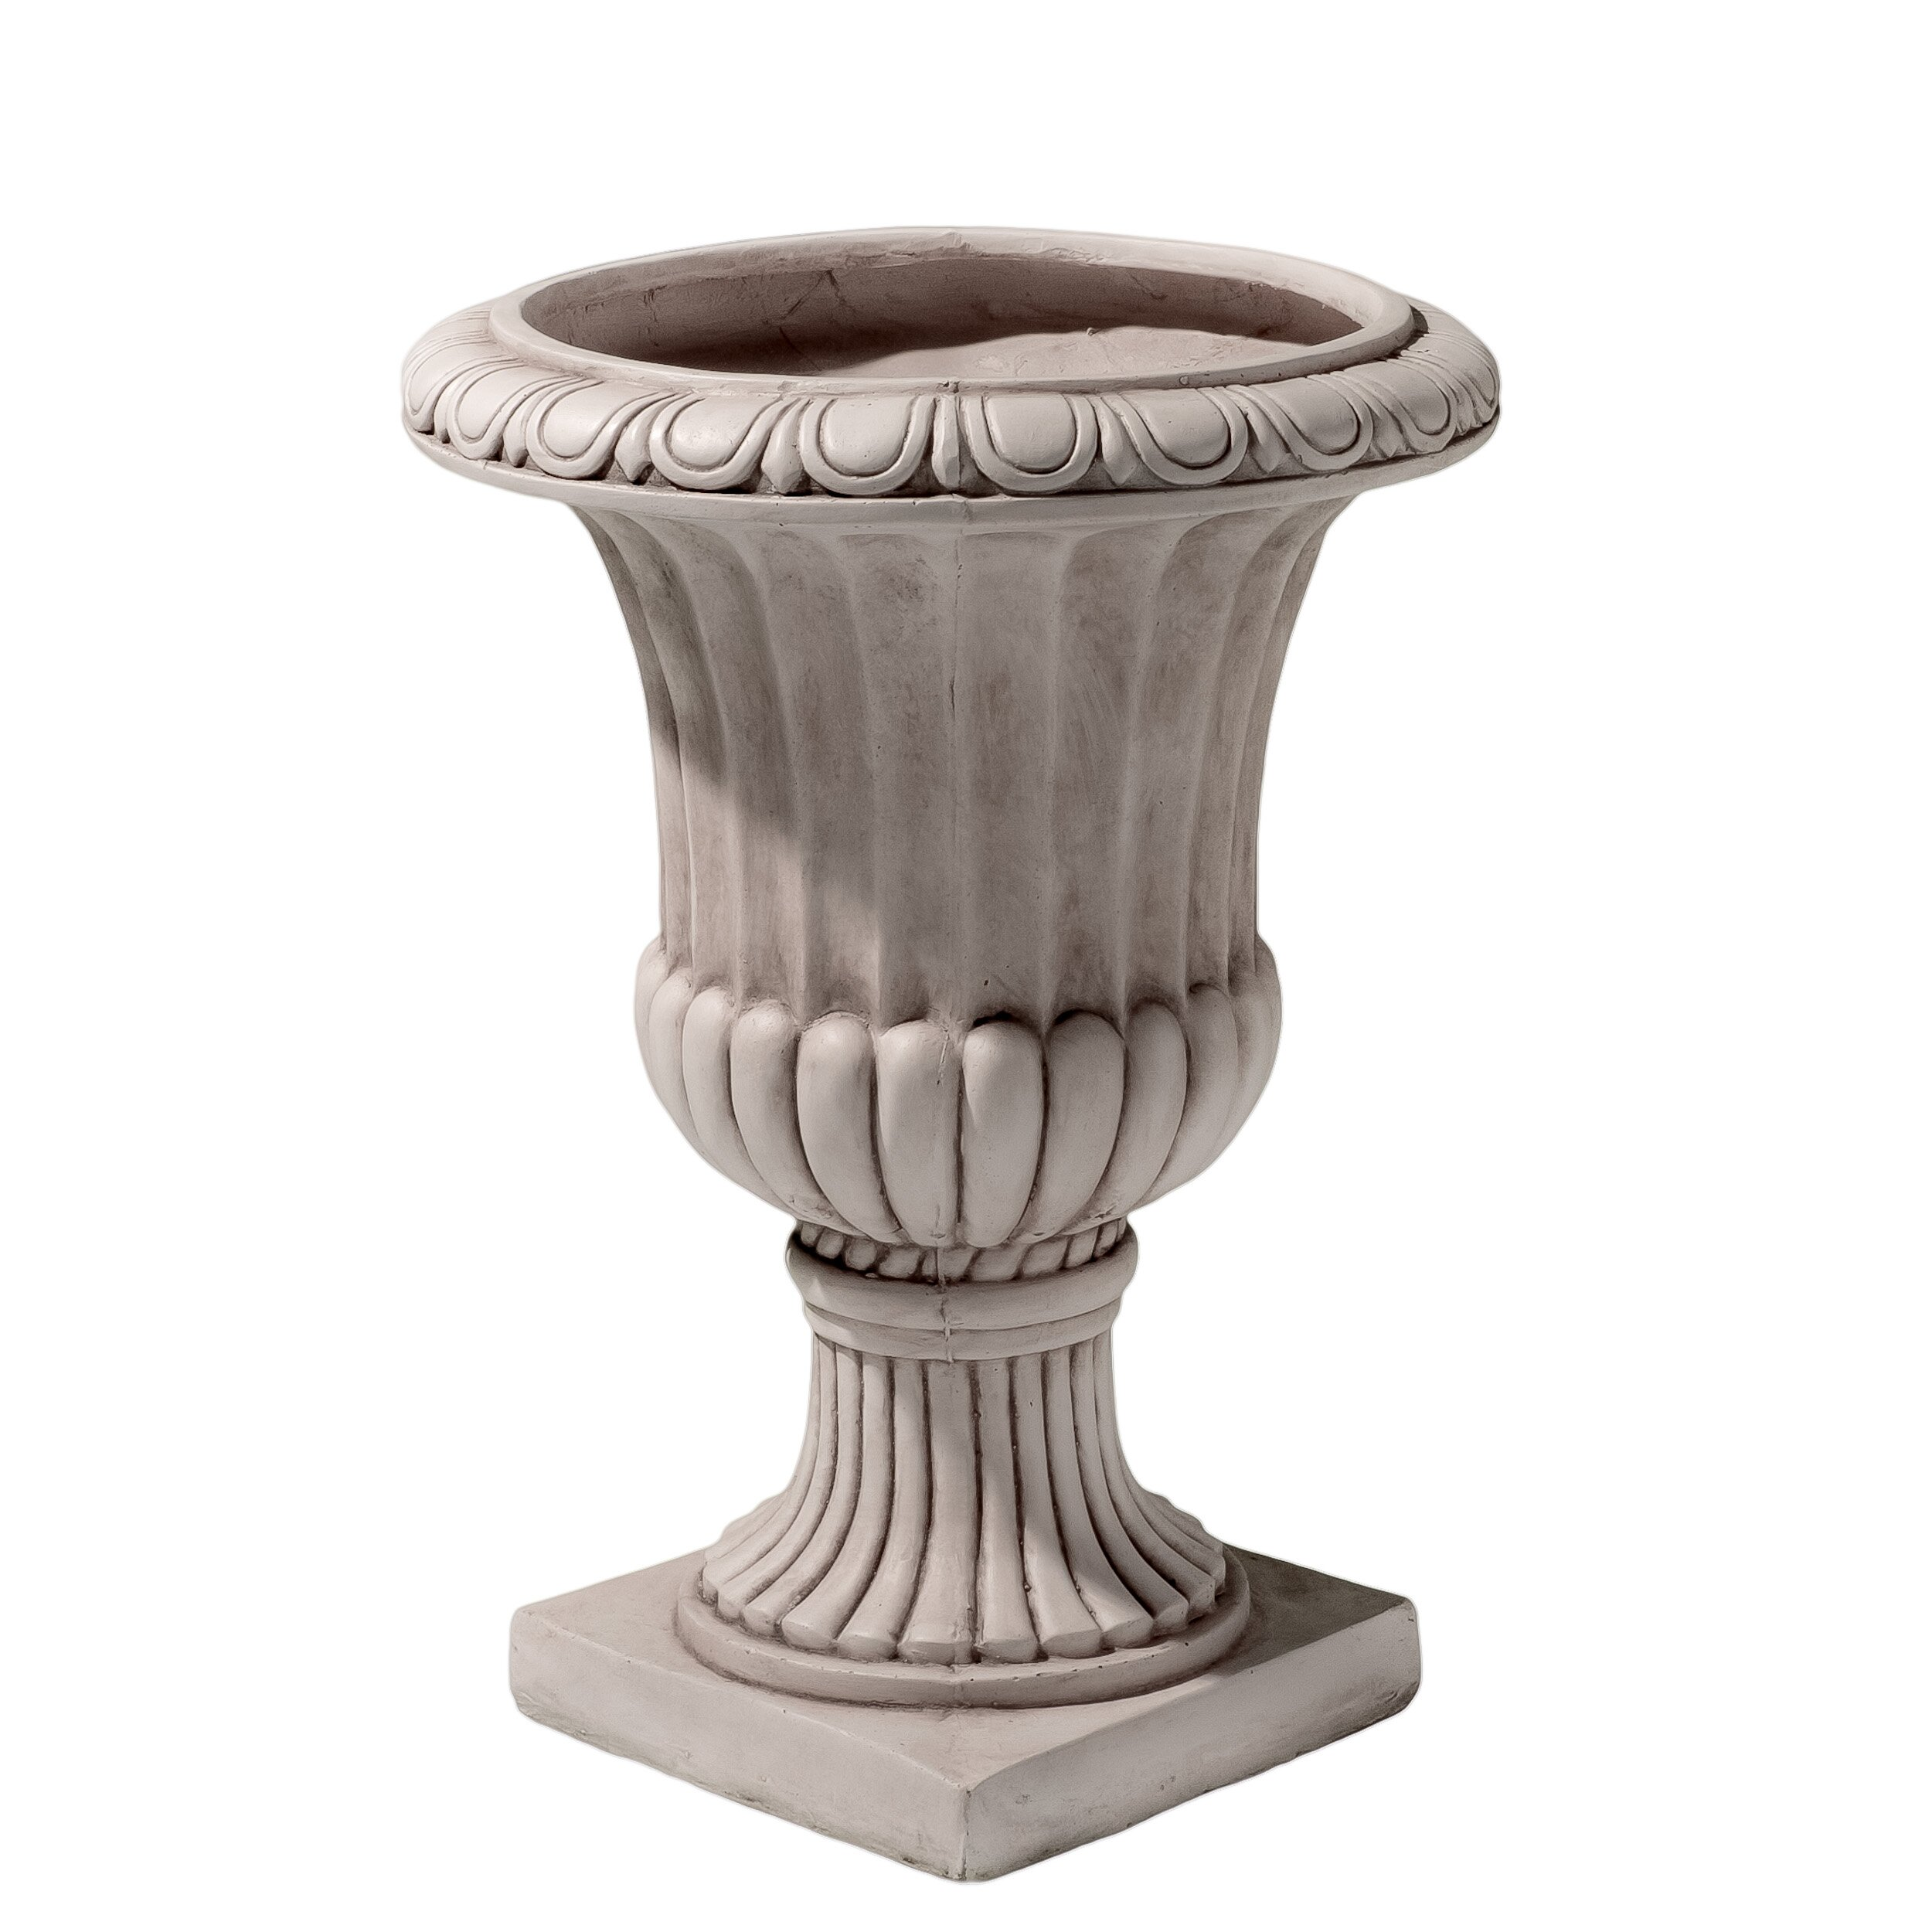 Italian Novelty Urn Planter Wayfair